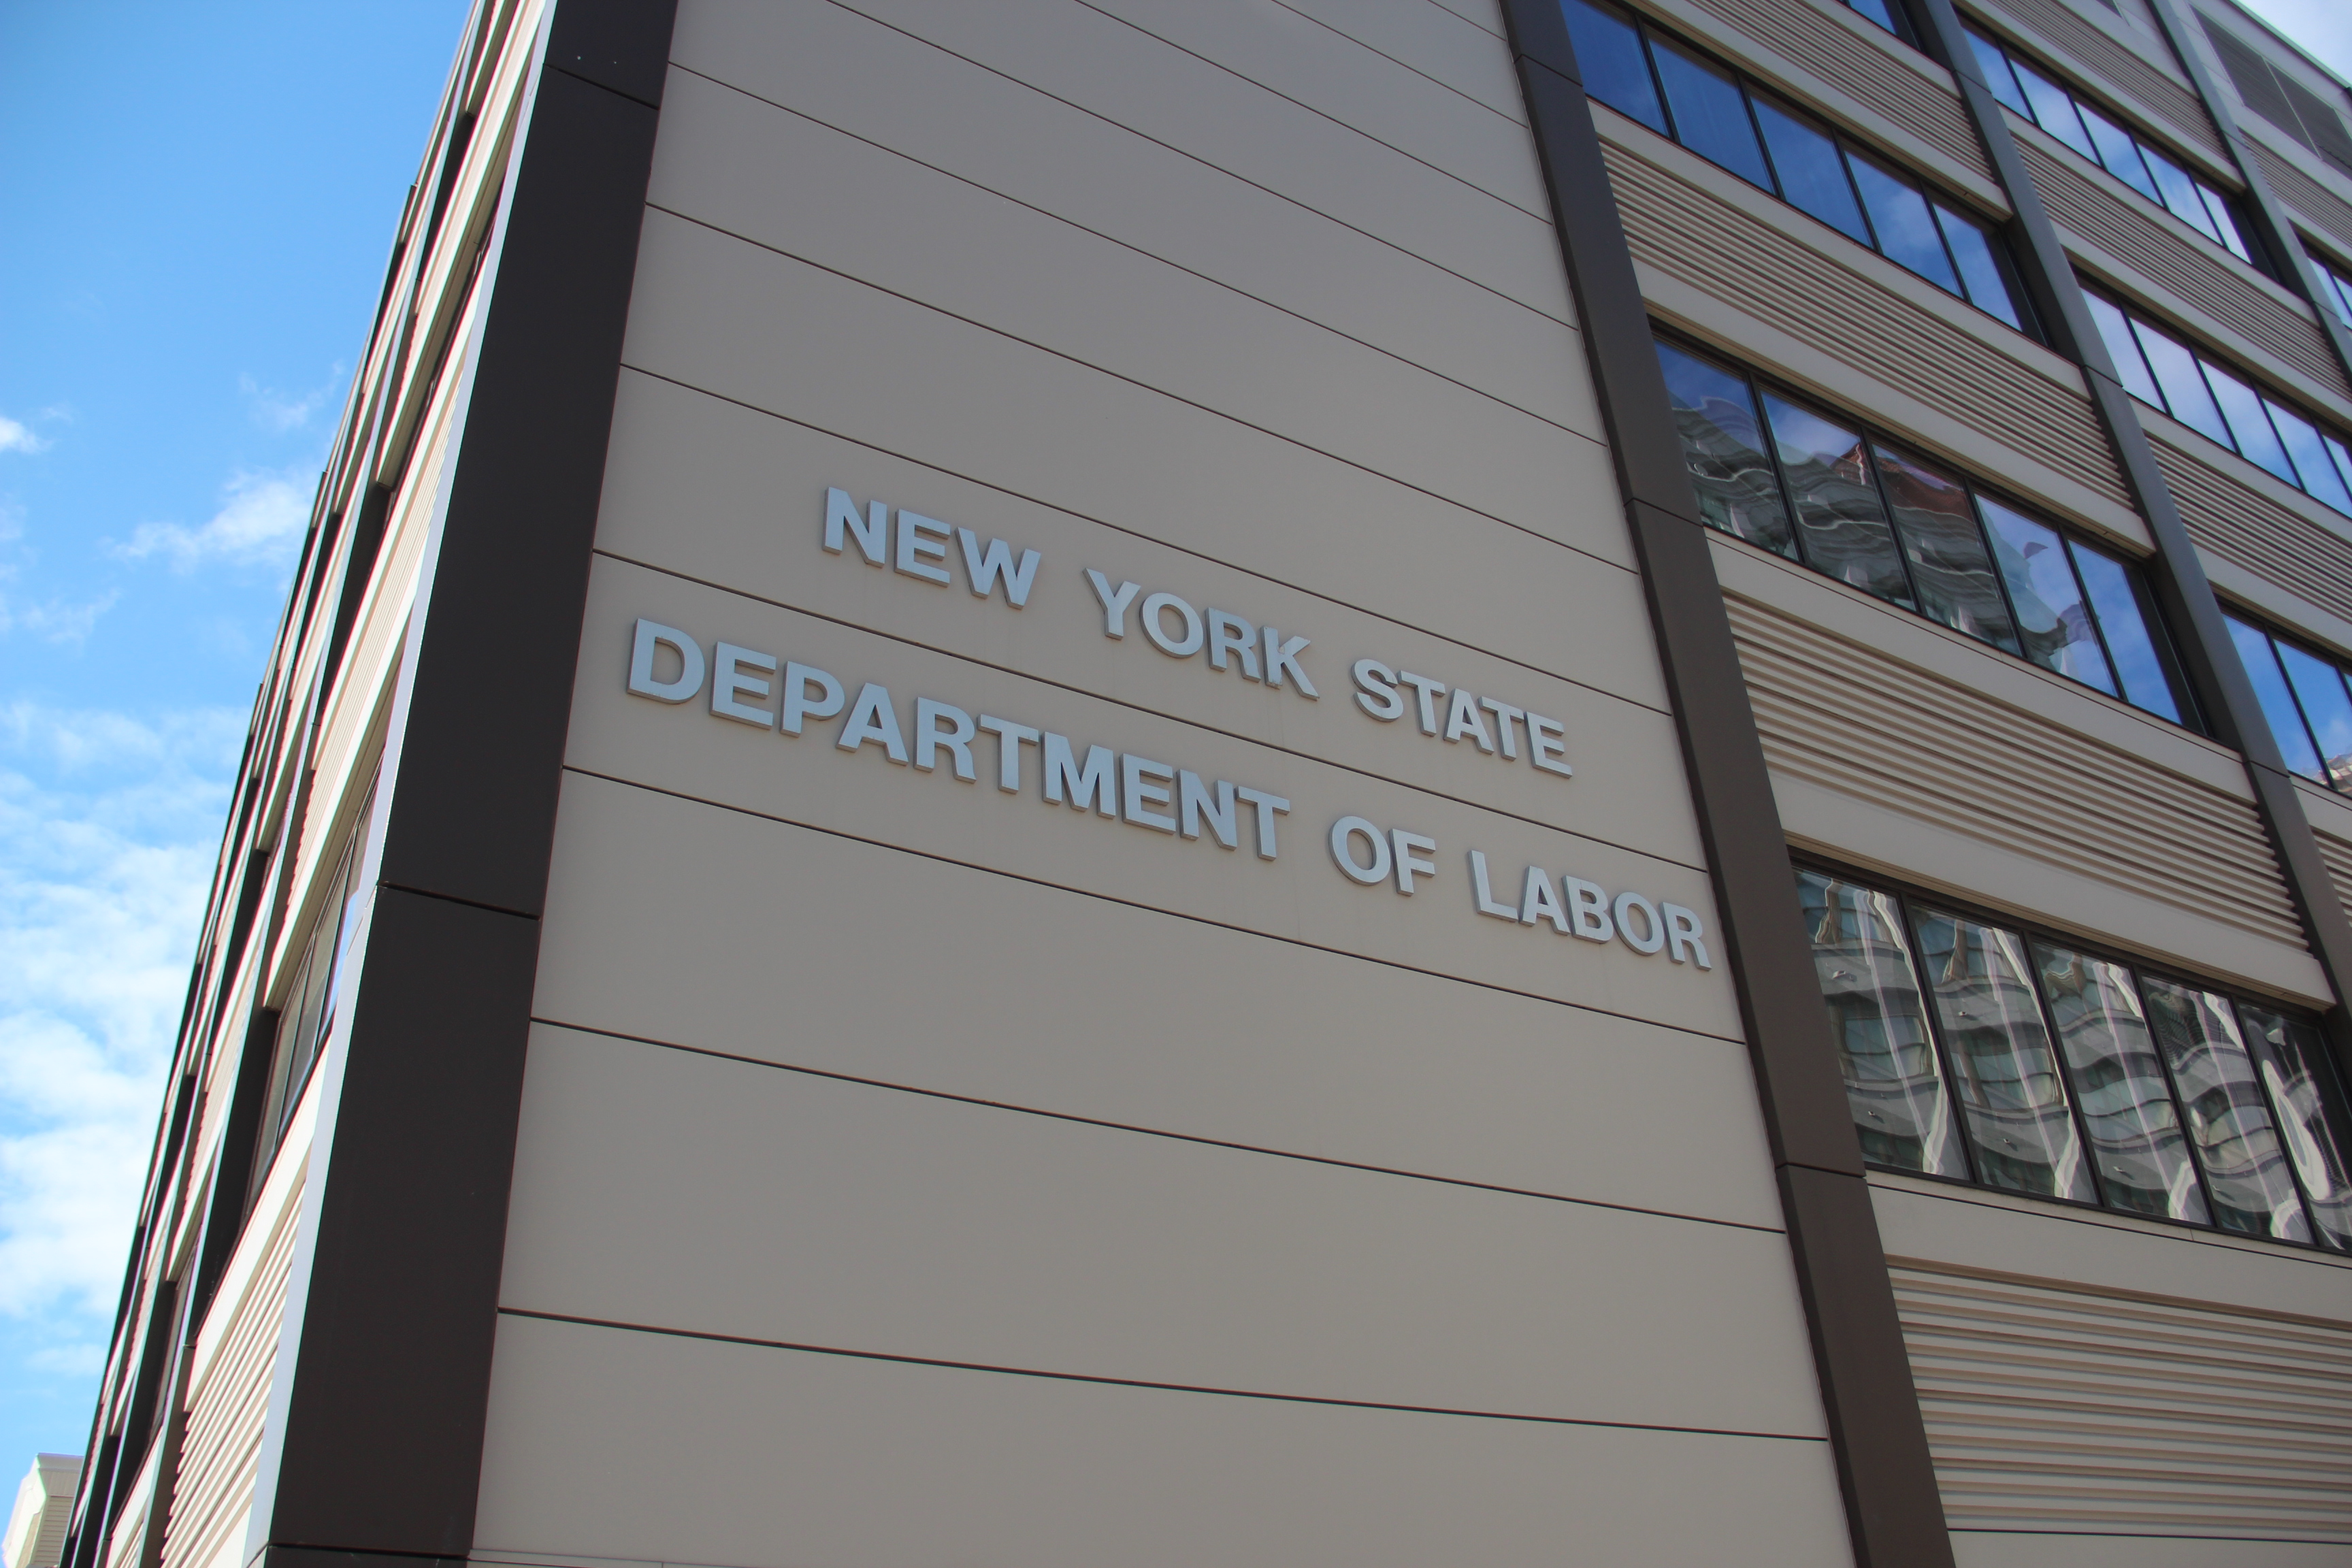 File:New York State Department of Labor building (250